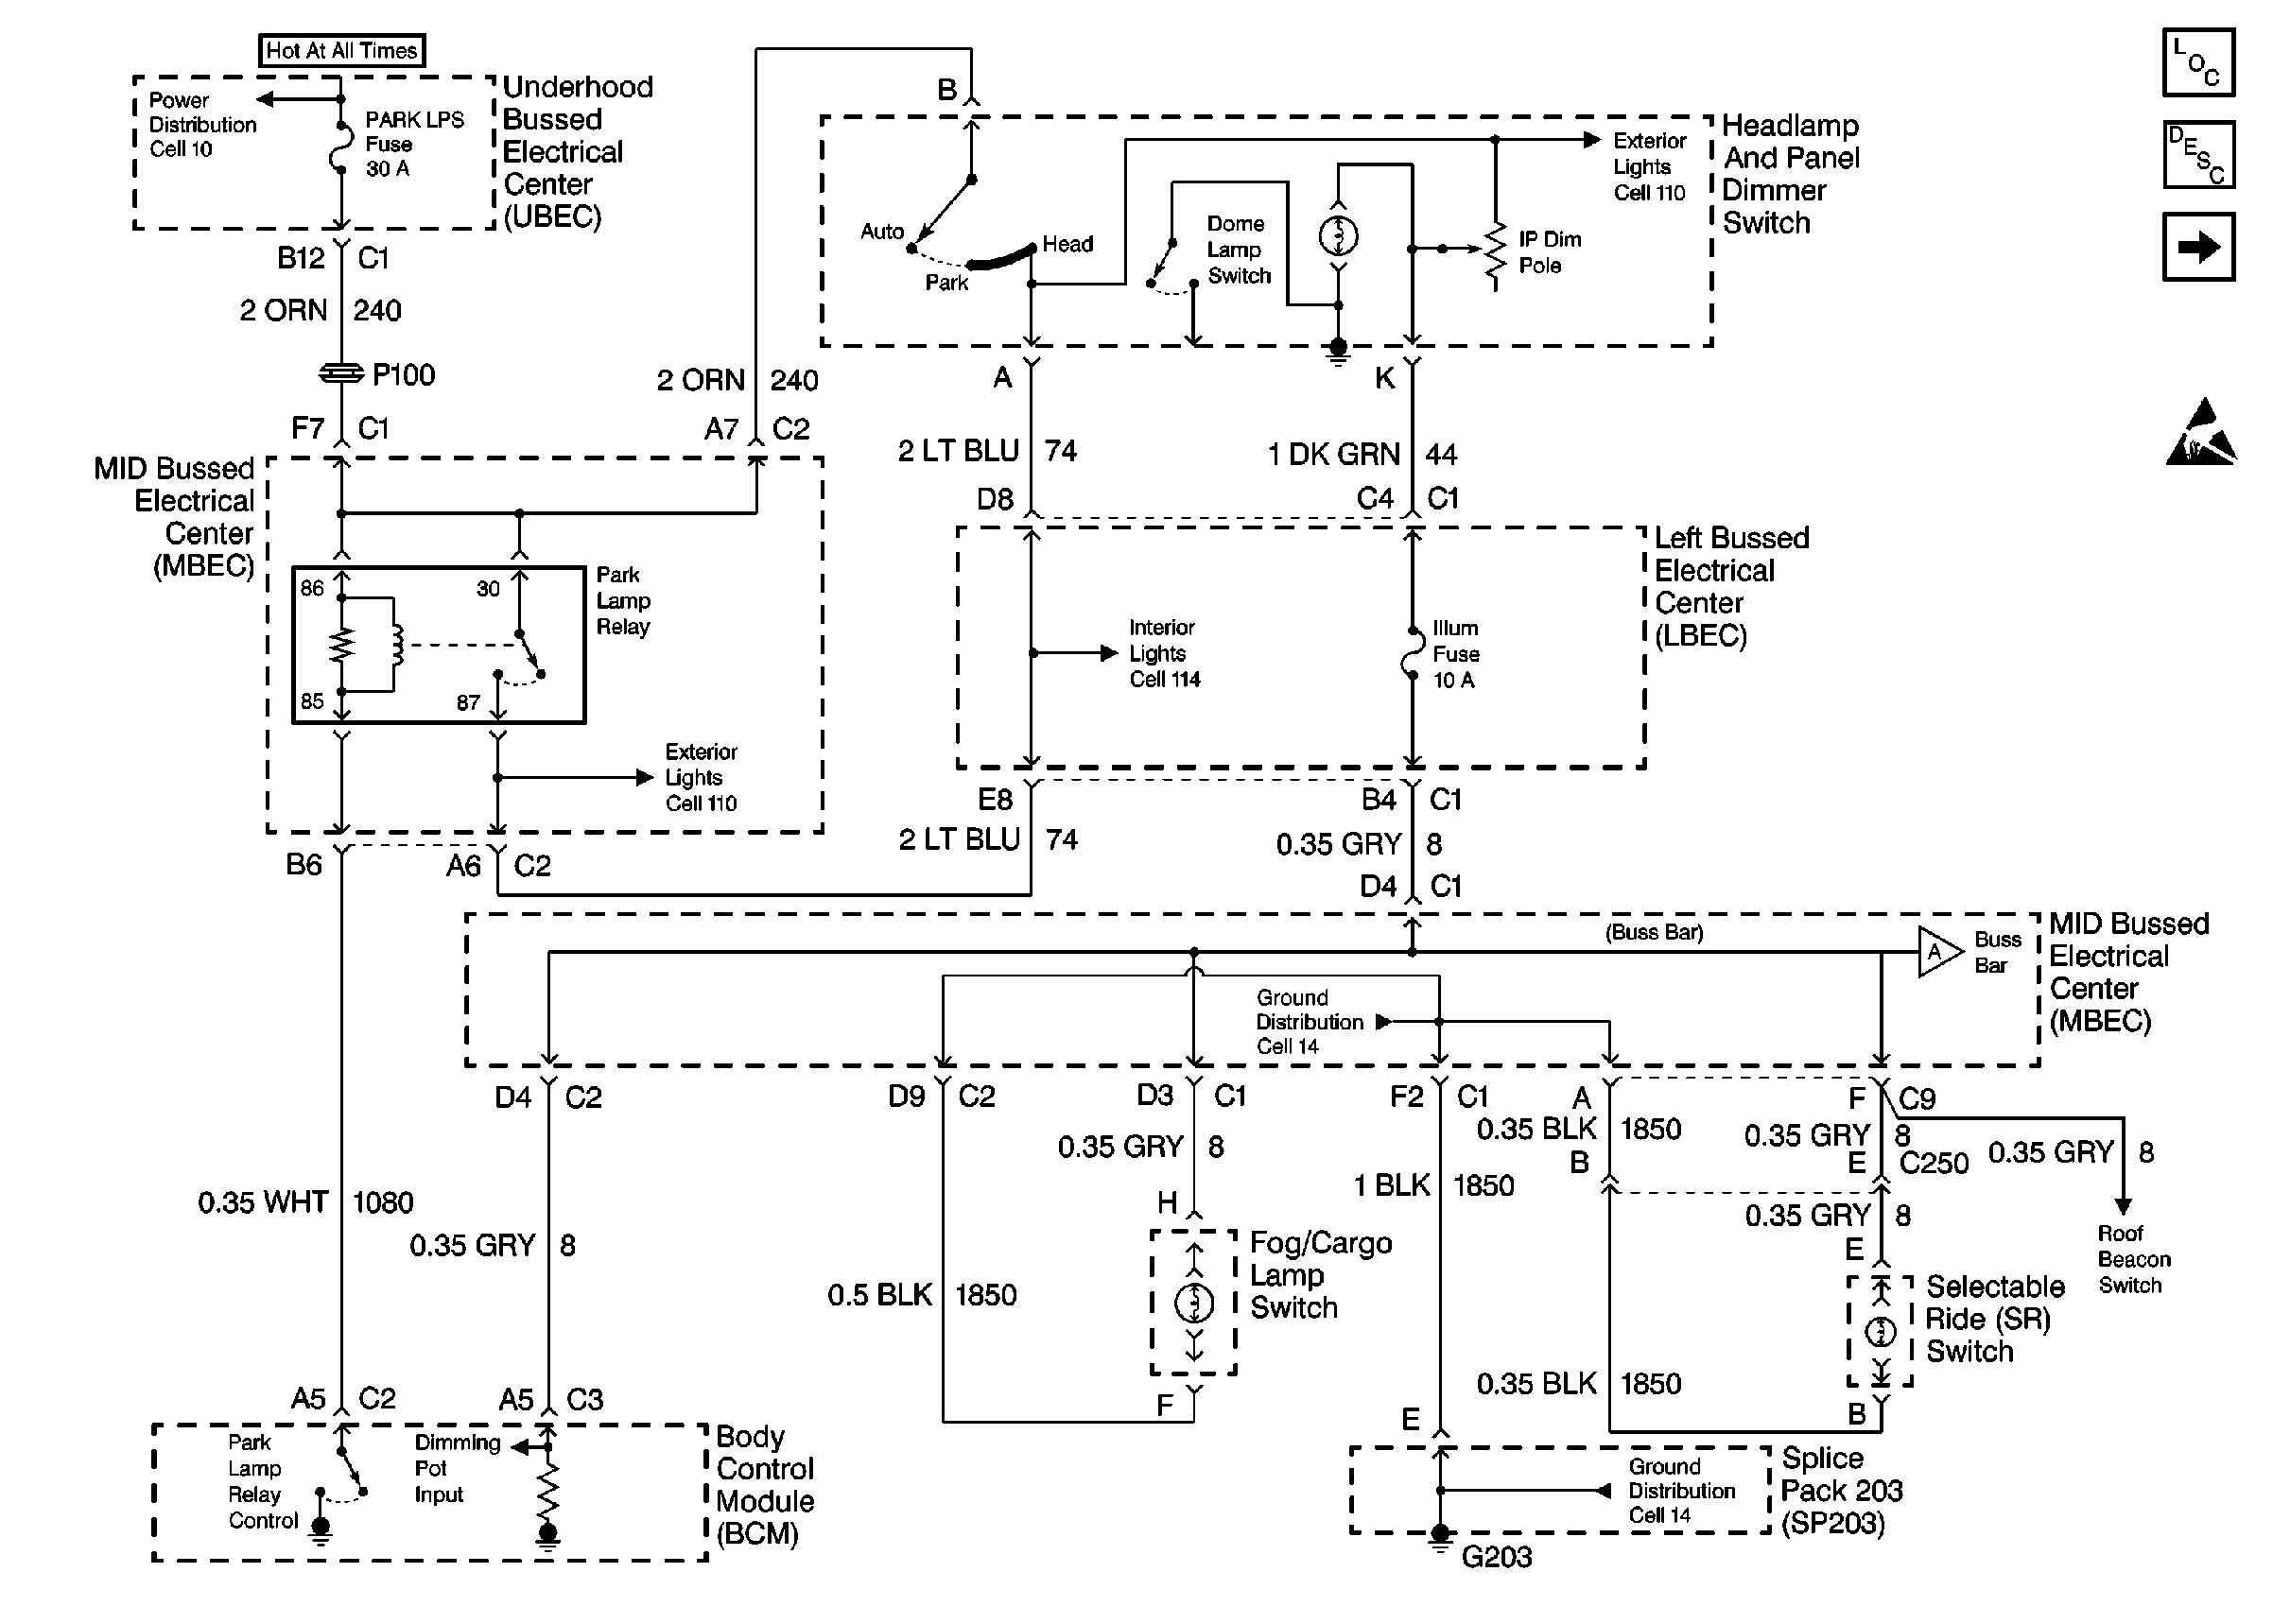 2002 Impala Fuse Box - Data Wiring Diagram on 71 monte carlo wiring diagram, 2002 monte carlo wiring diagram, throttle position sensor wiring diagram, 88 rx7 wiring diagram, 99 ford mustang wiring diagram,